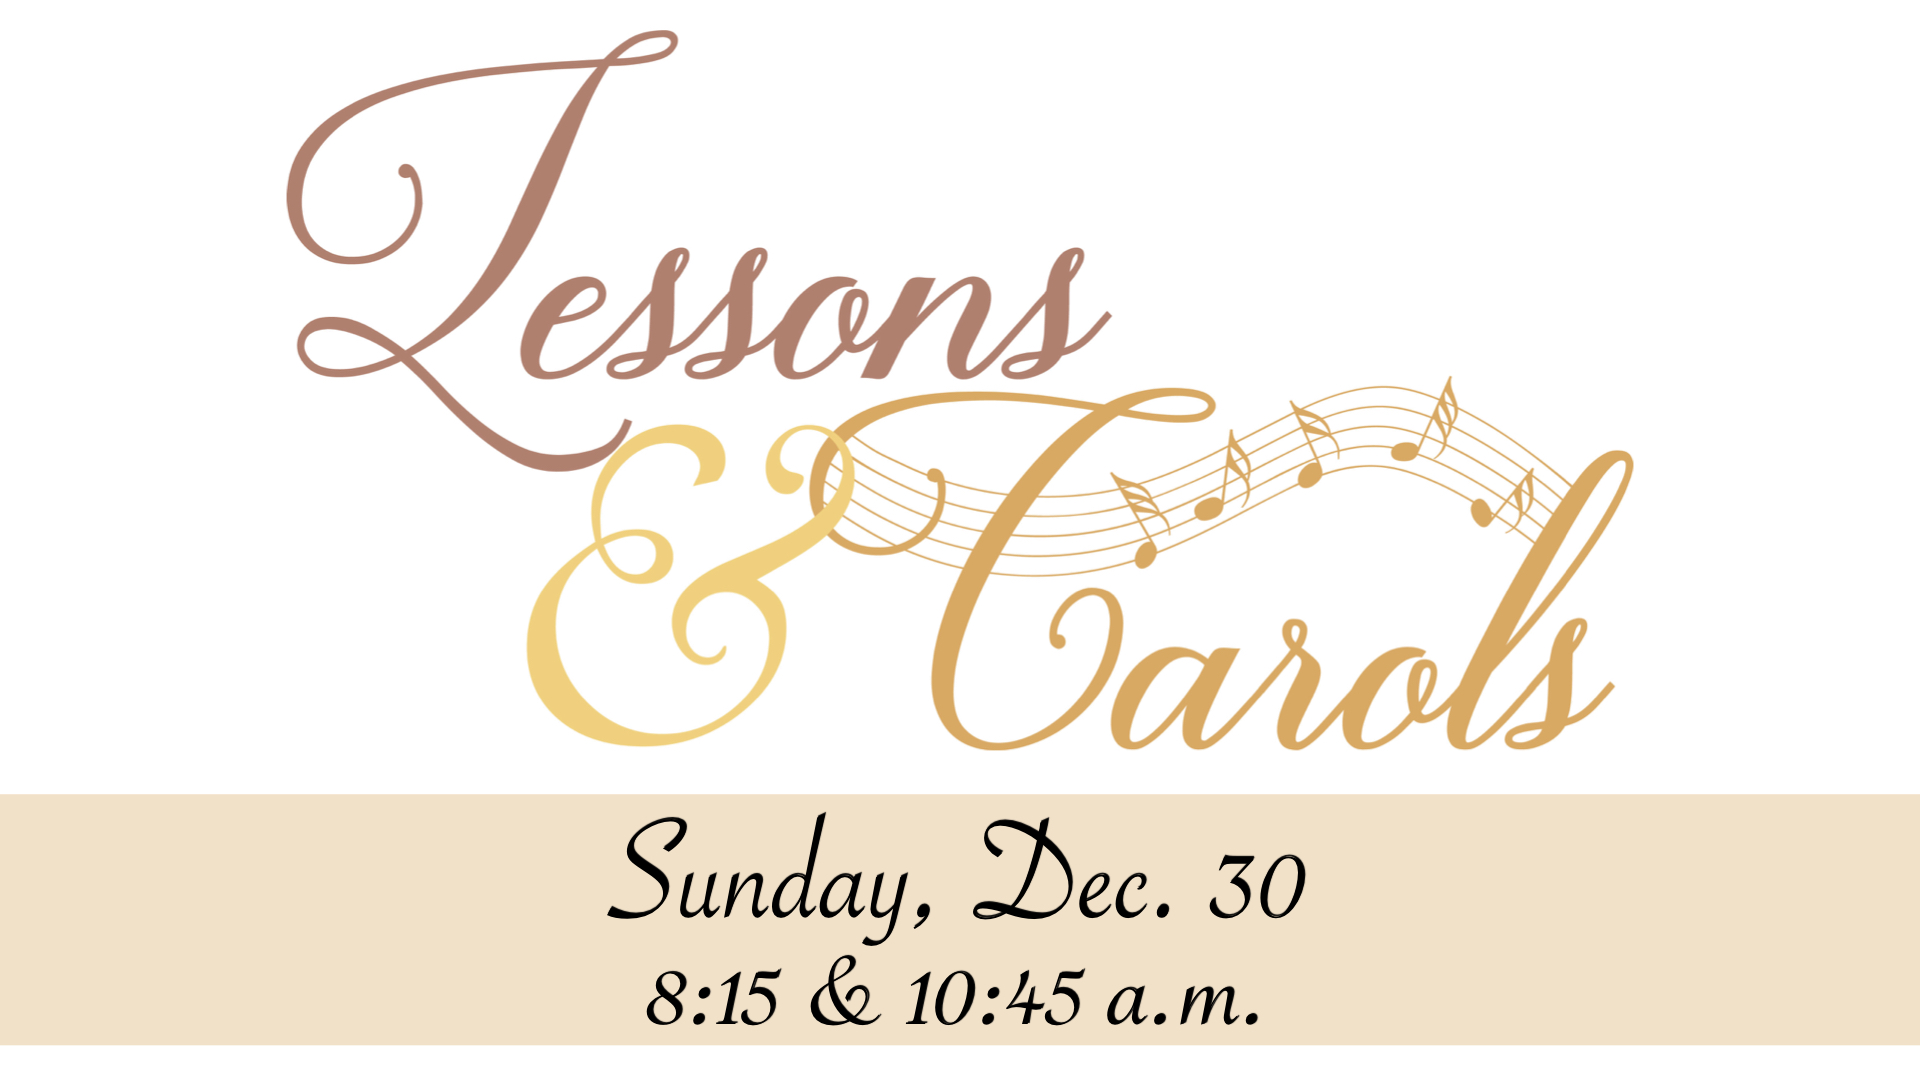 2018 Lessons and Carols Worship Service